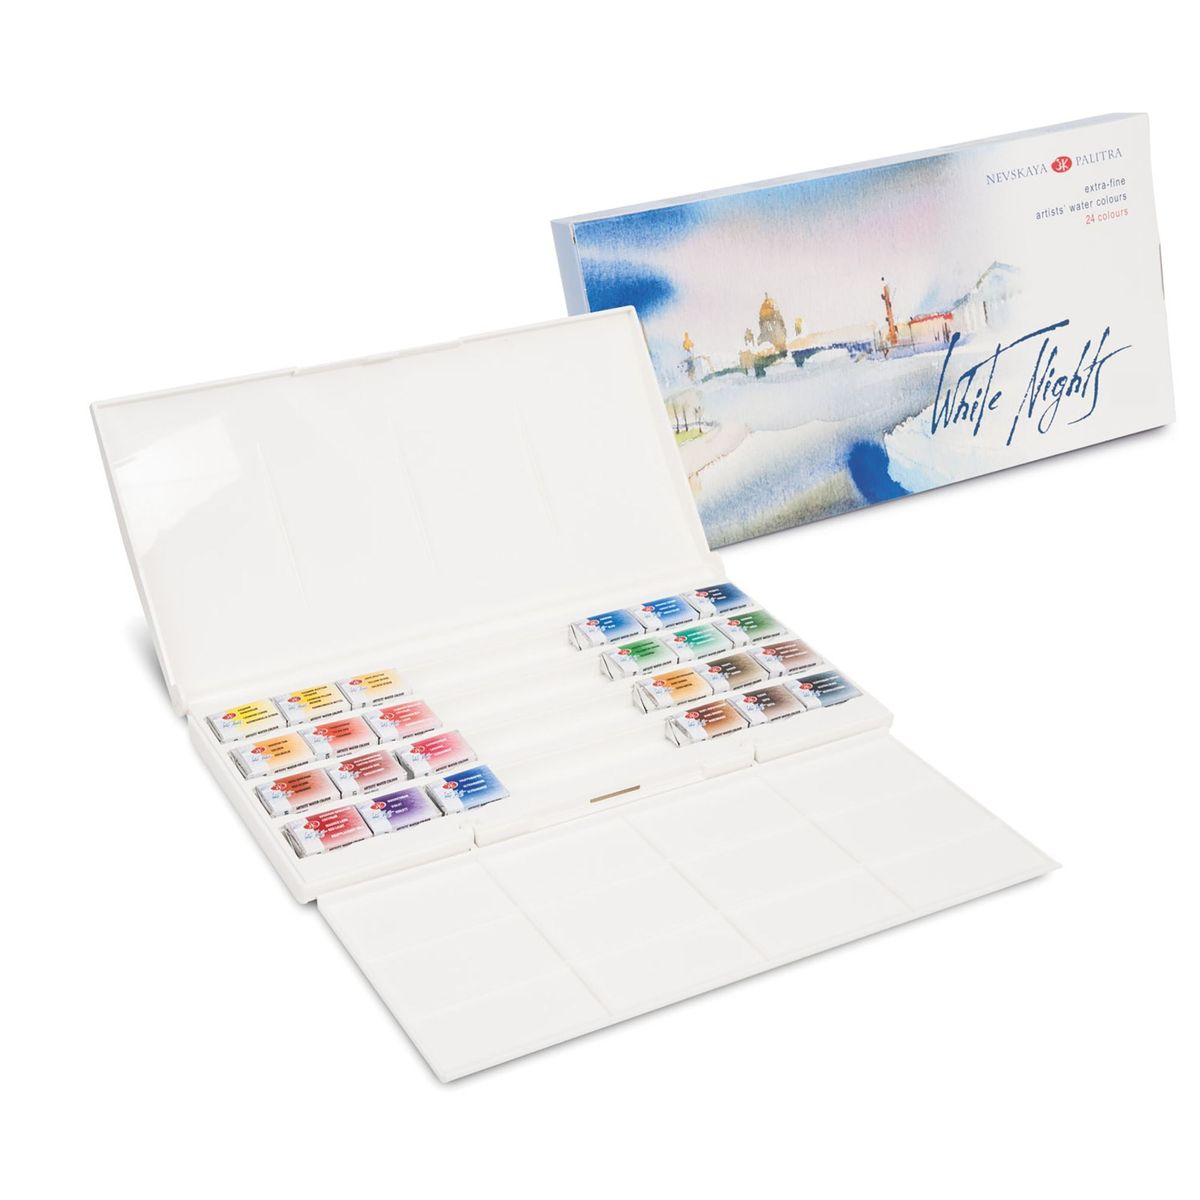 KIT AQUARELA WHITE NIGHTS EM PASTILHA 24 CORES